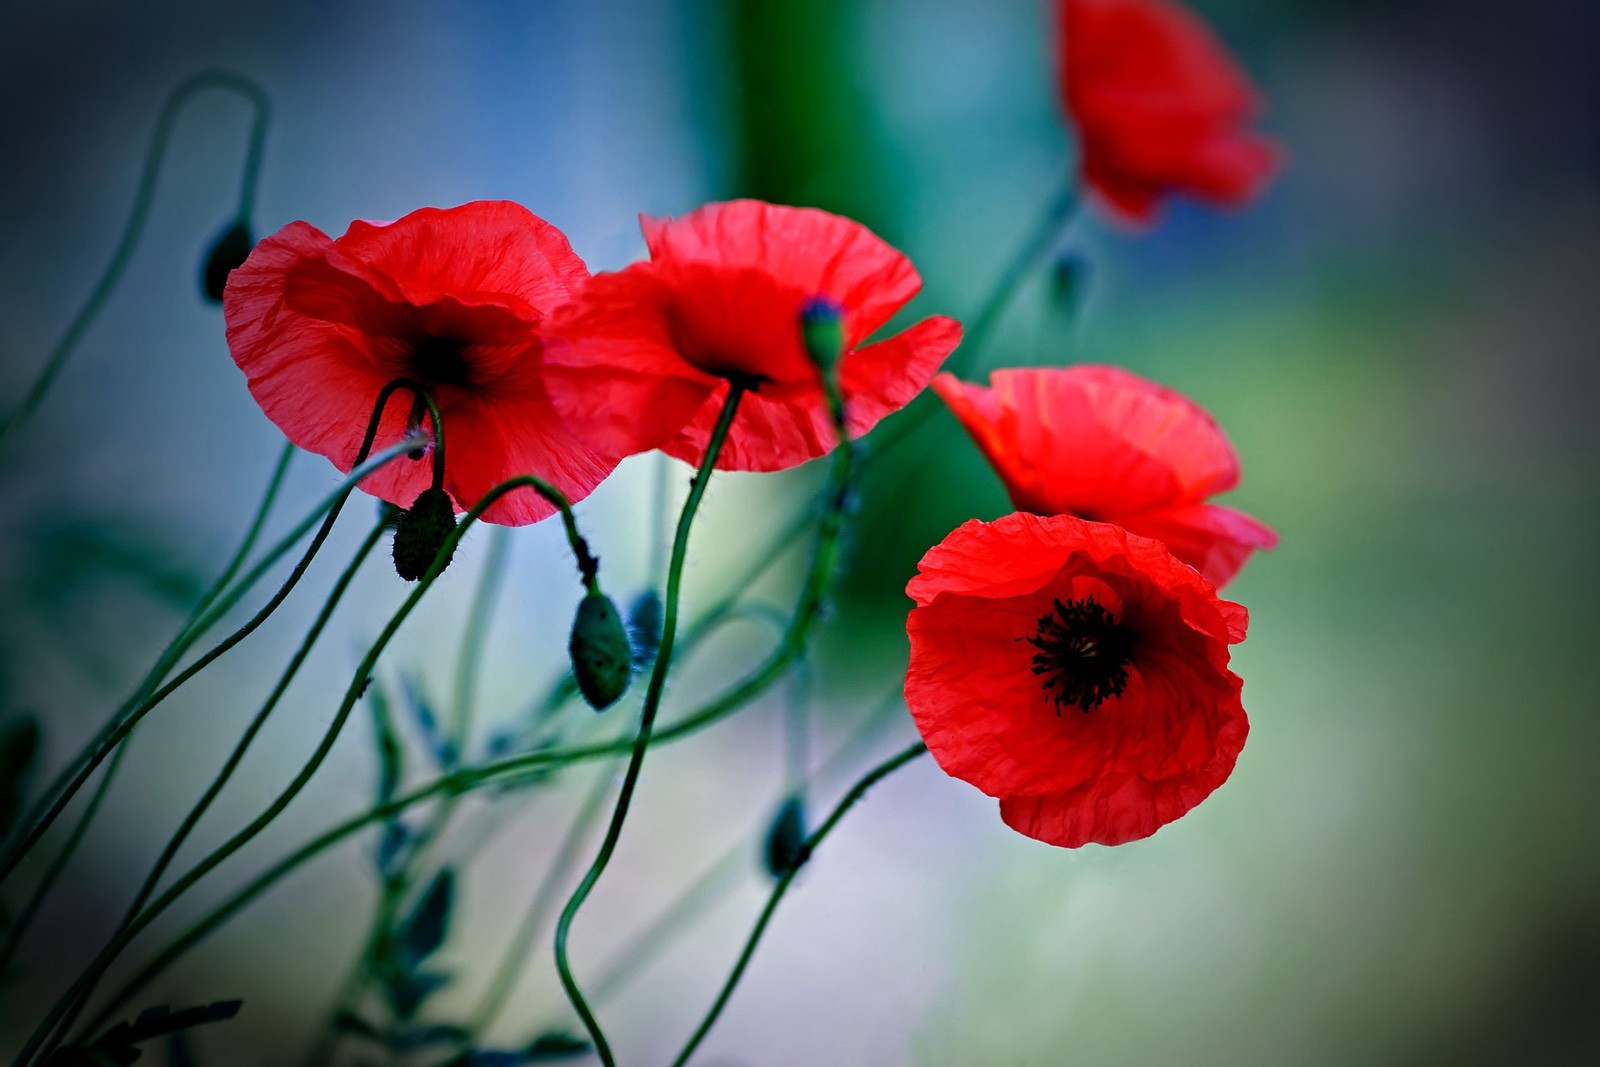 Poppy symbolism and poppy flower meanings on whats your sign poppy symbolism and poppy meaning mightylinksfo